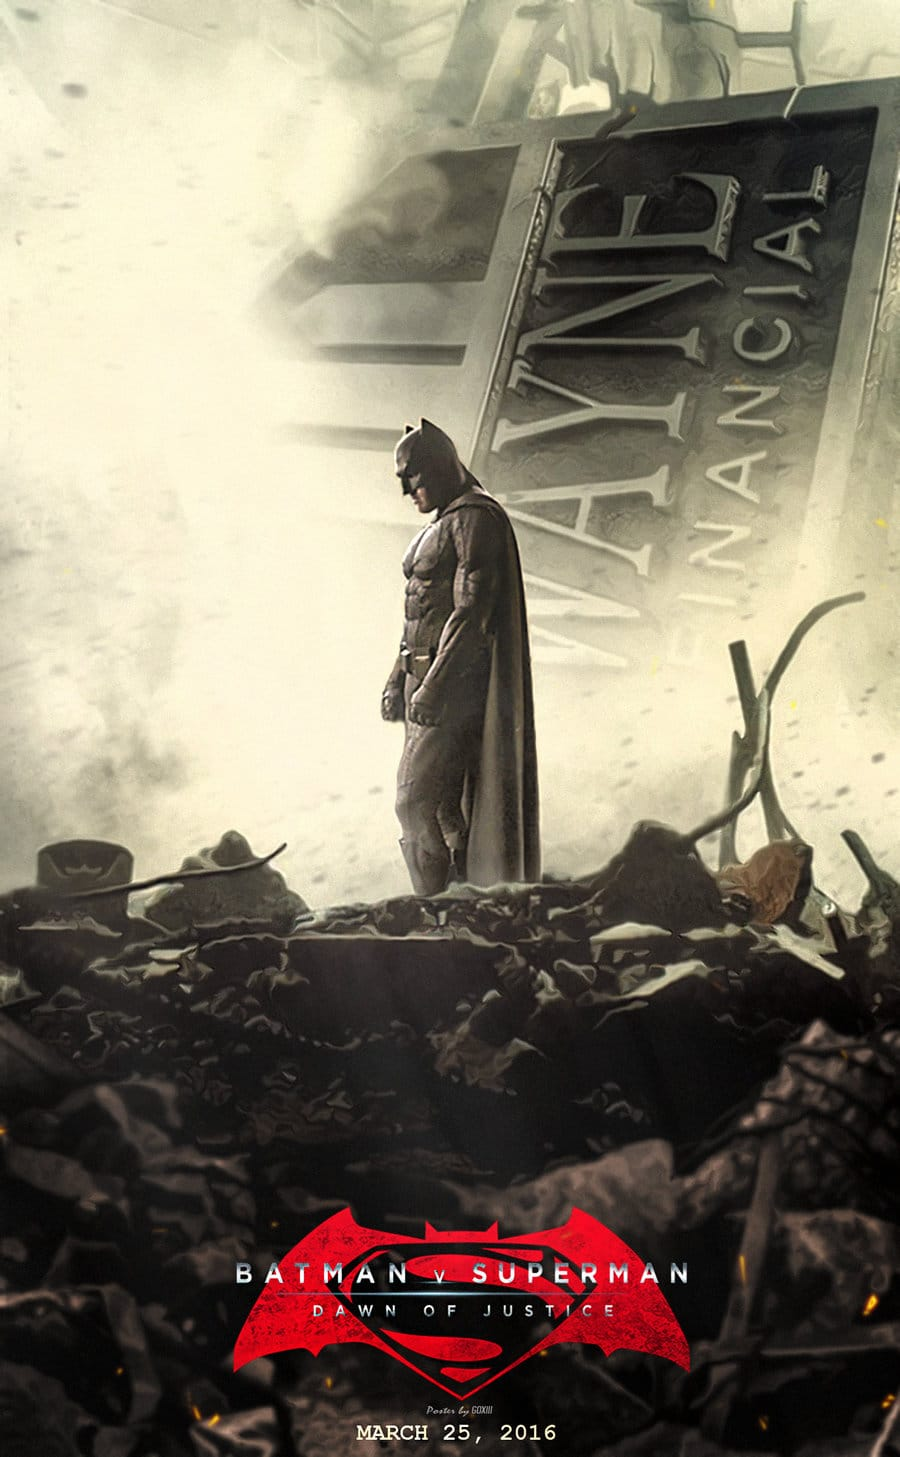 Batman-Vs-Superman-Posters-hd-printable-batman-wayne-enterprise-collapsed